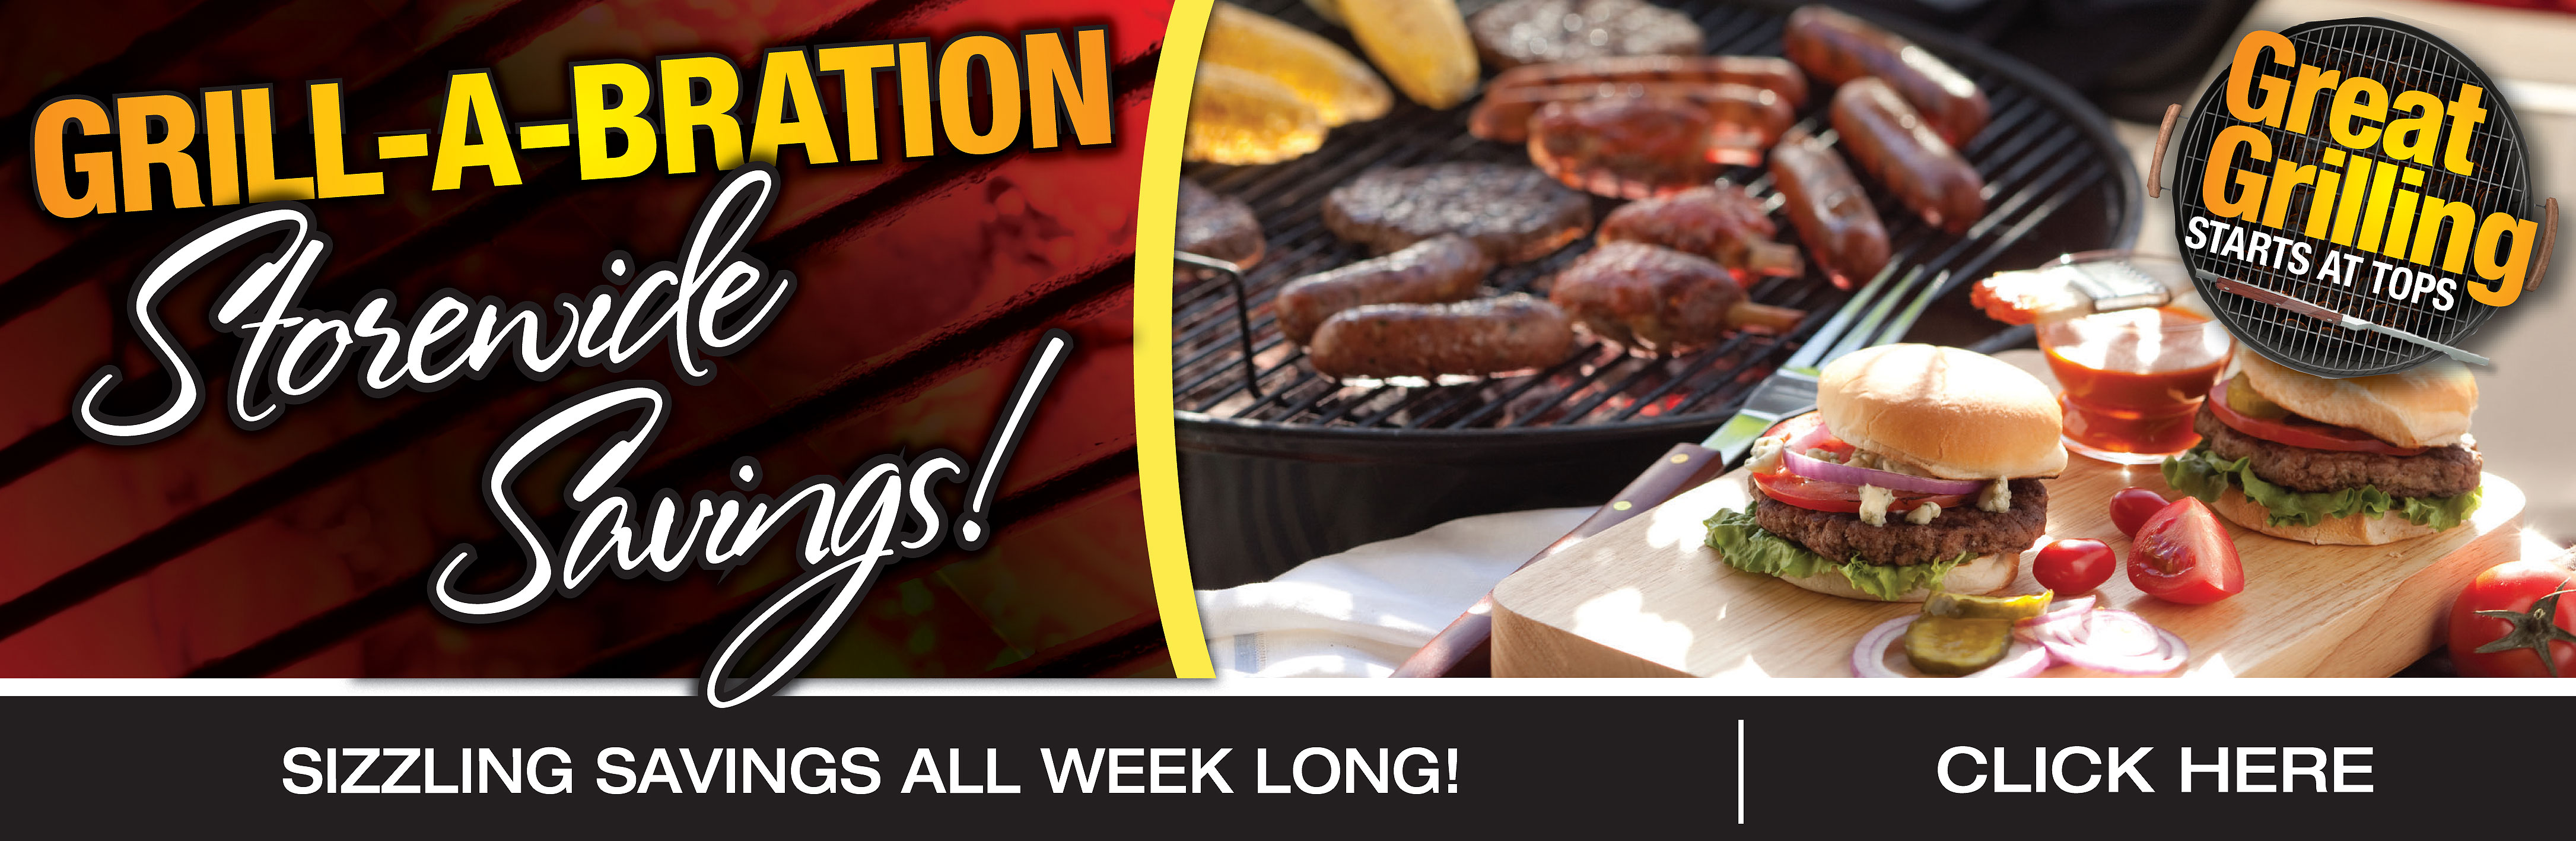 Grill-A-Bration Savings